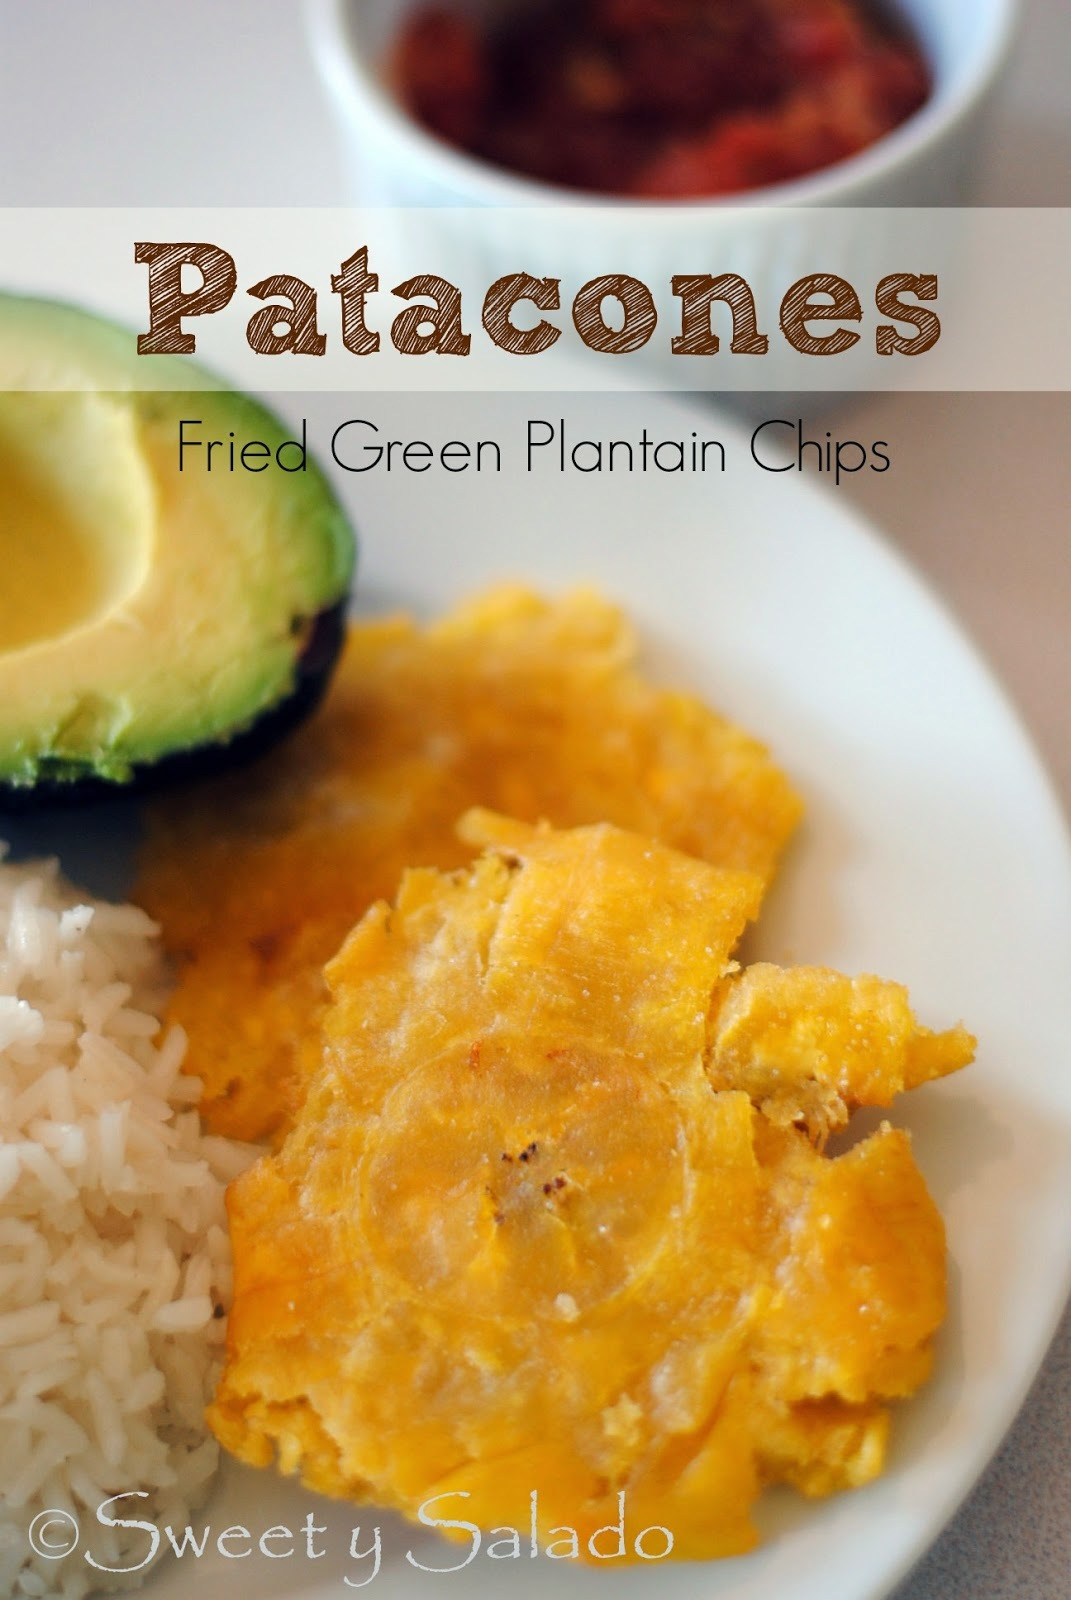 Patacones (Fried Green Plantain Chips)